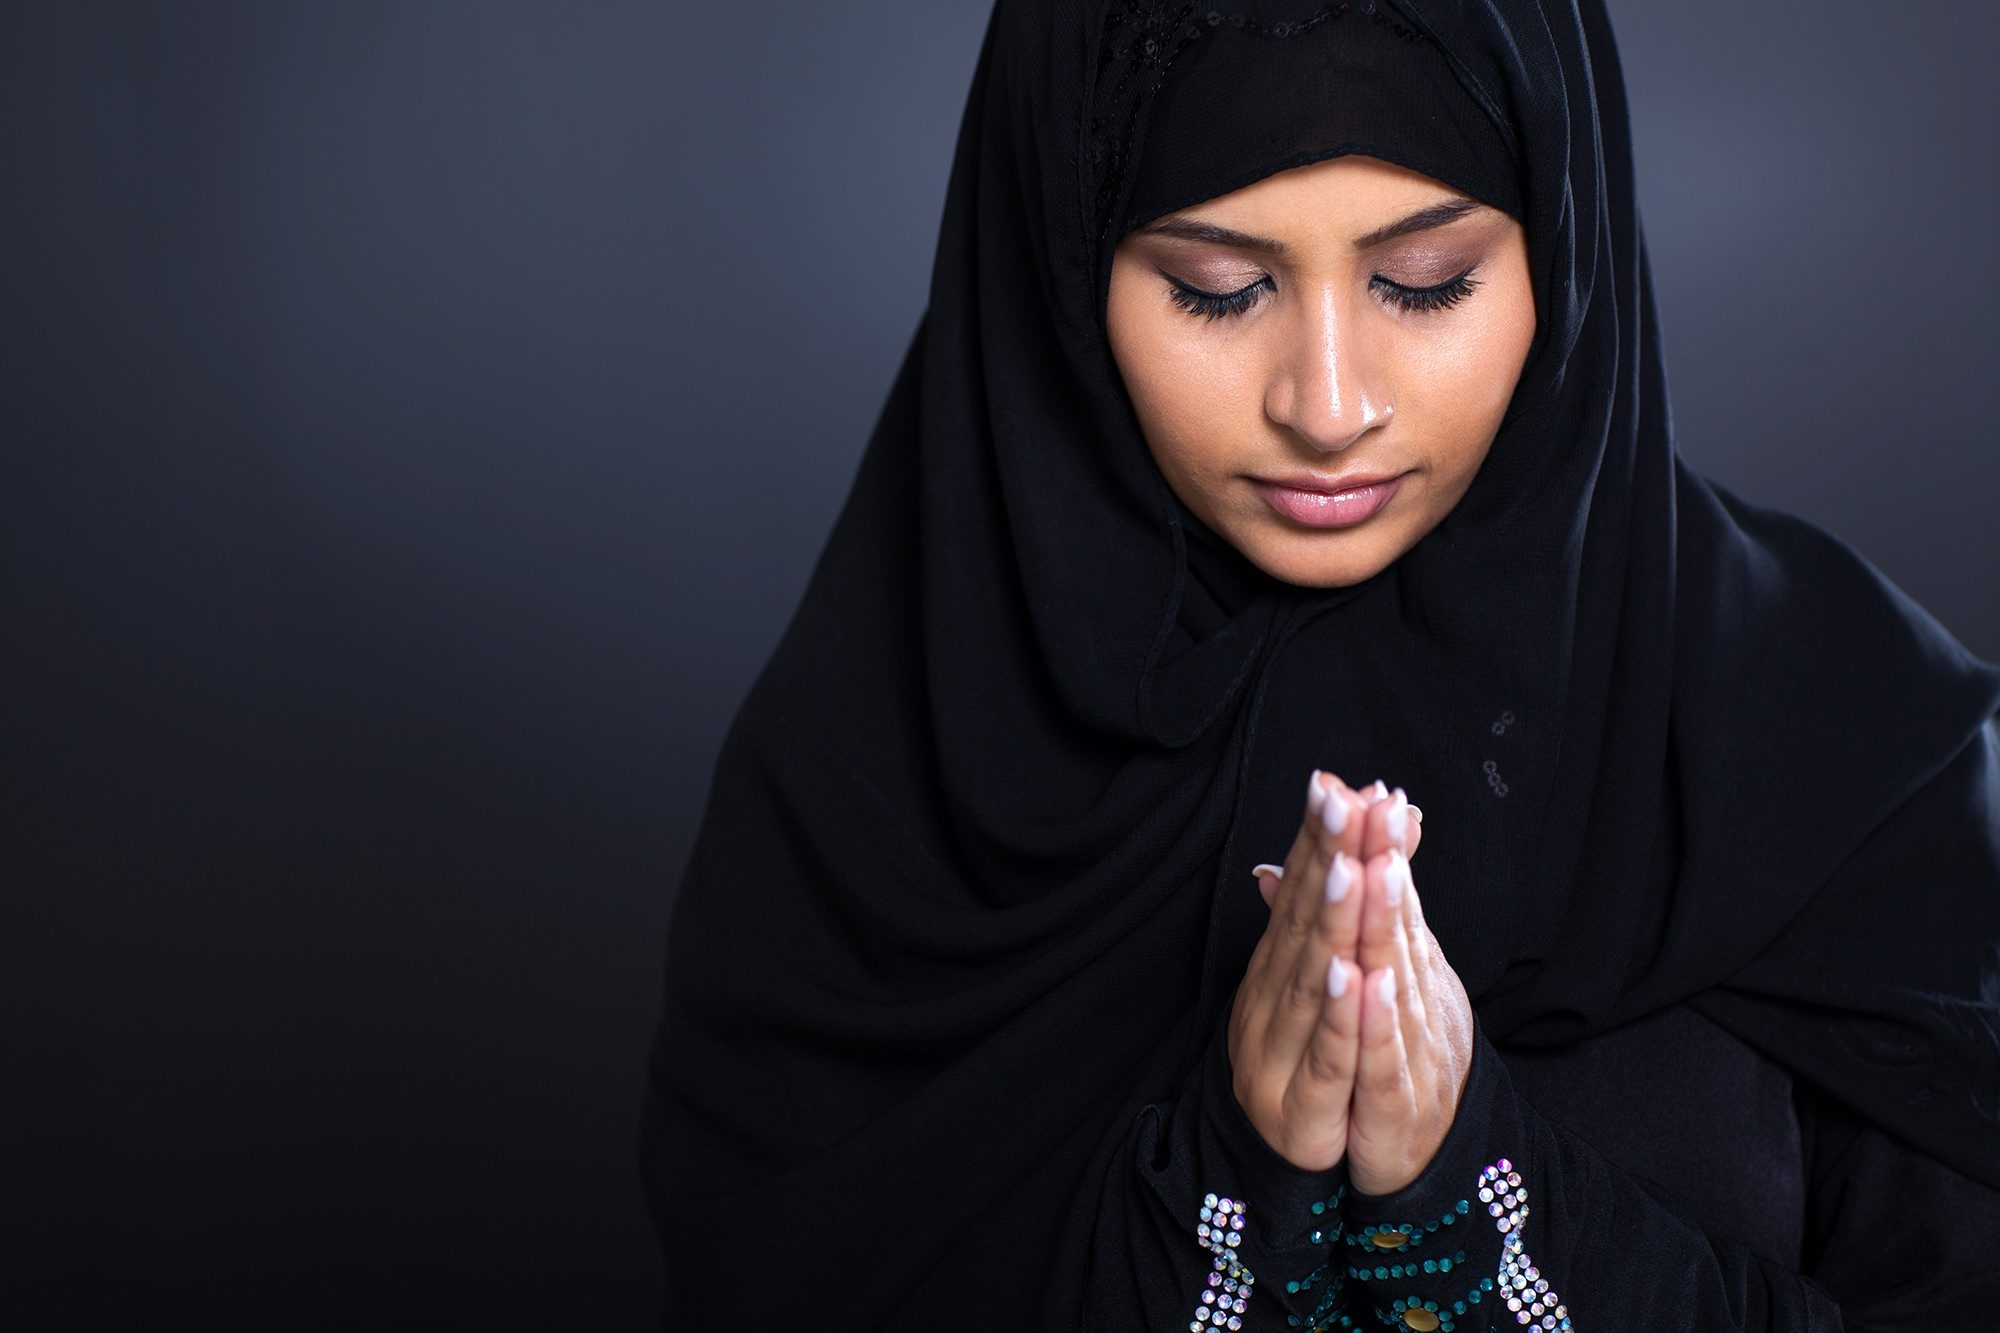 With 48 percent of Muslim Americans reporting that they have experienced racial or religious discrimination according to Gallup, it can be scary to think how Islamophobia may change Muslim Americans' perspective of their own religion.